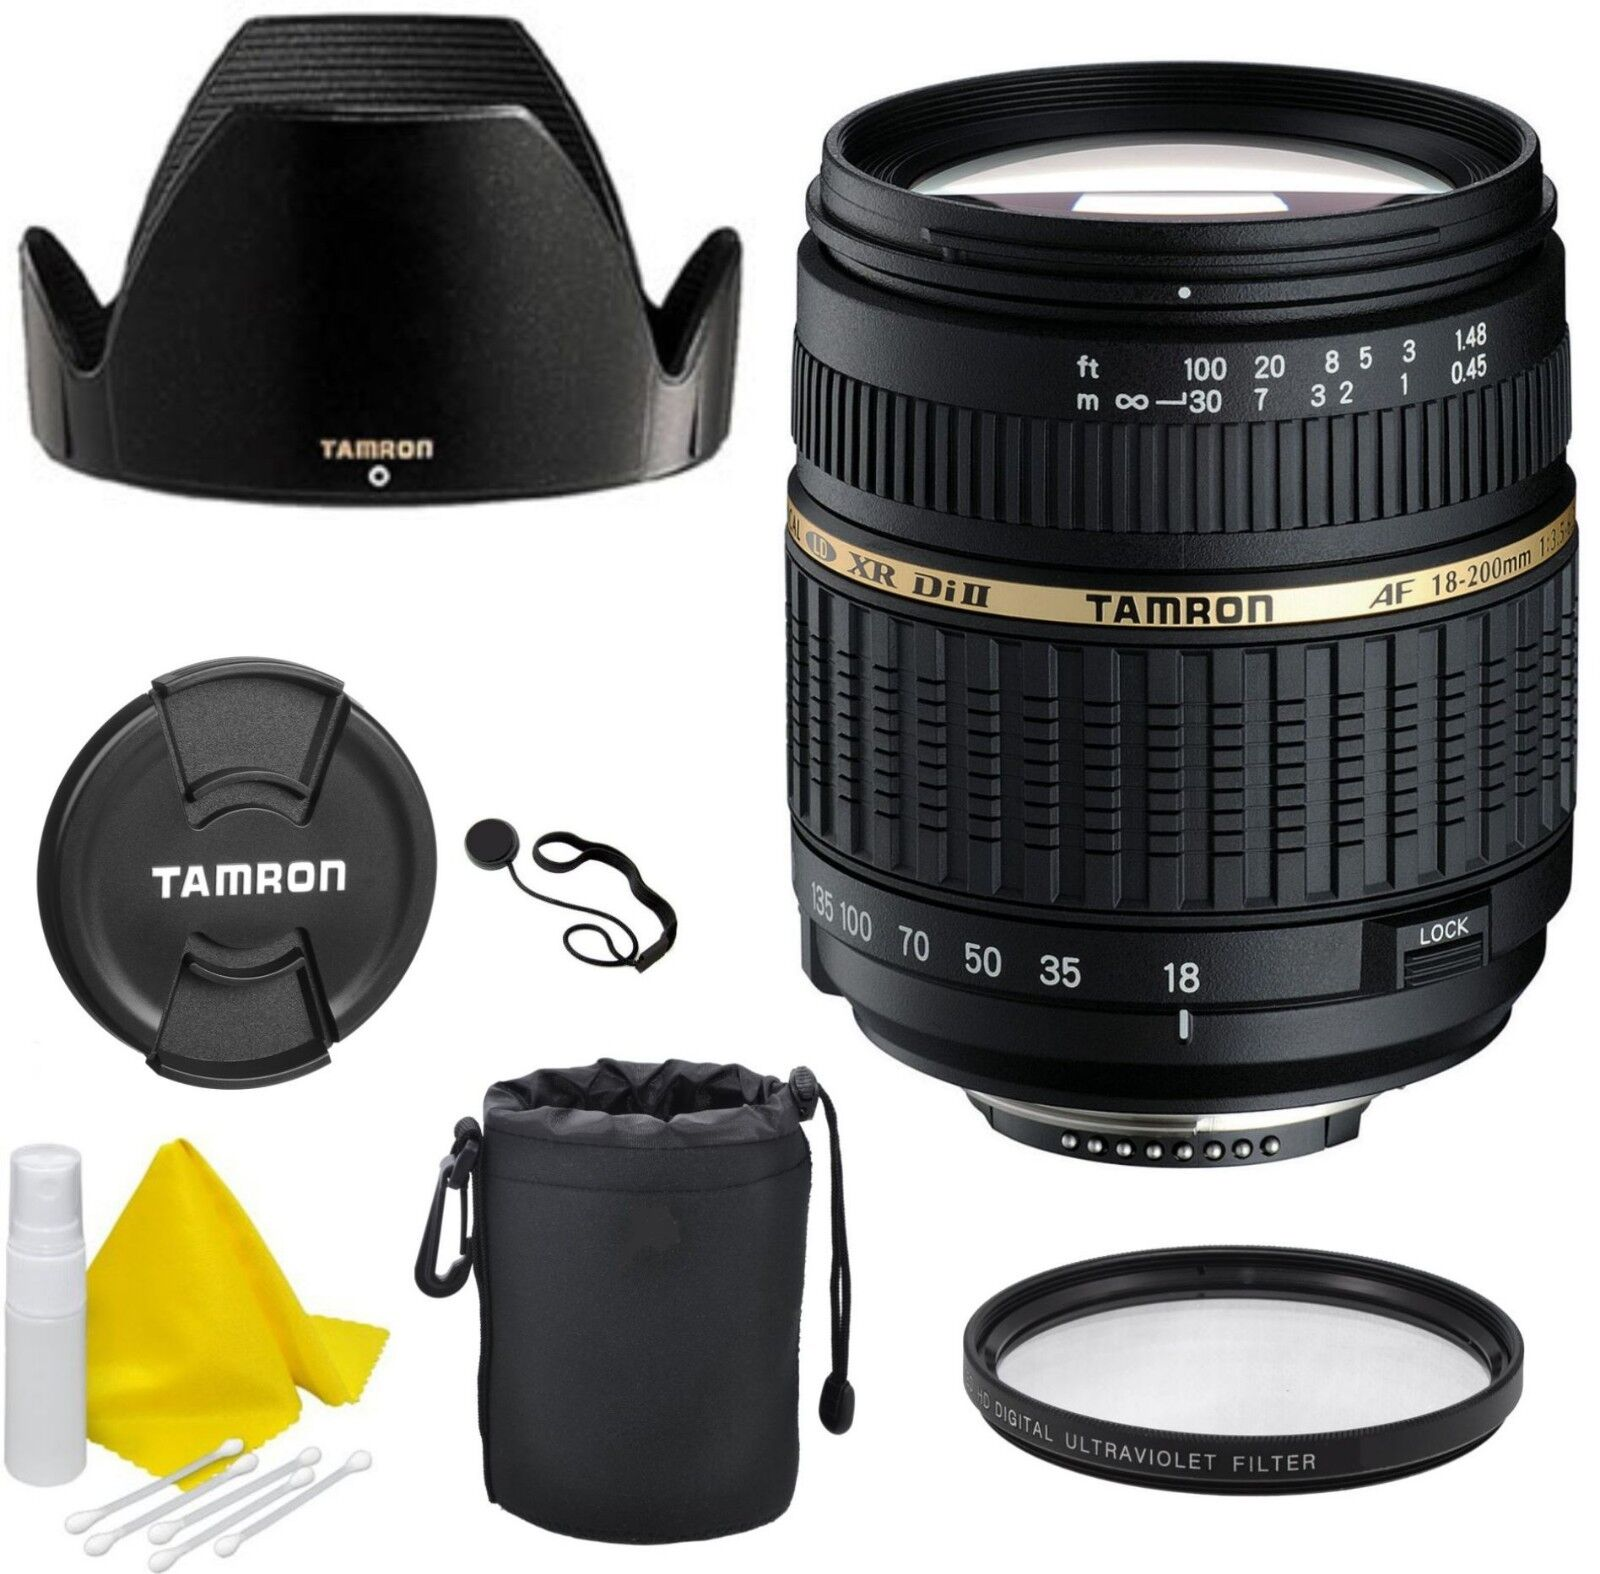 tamron 18 200 mm f 3 5 6 3 di ii xr aspherical af if lens for canon chf picclick ch. Black Bedroom Furniture Sets. Home Design Ideas